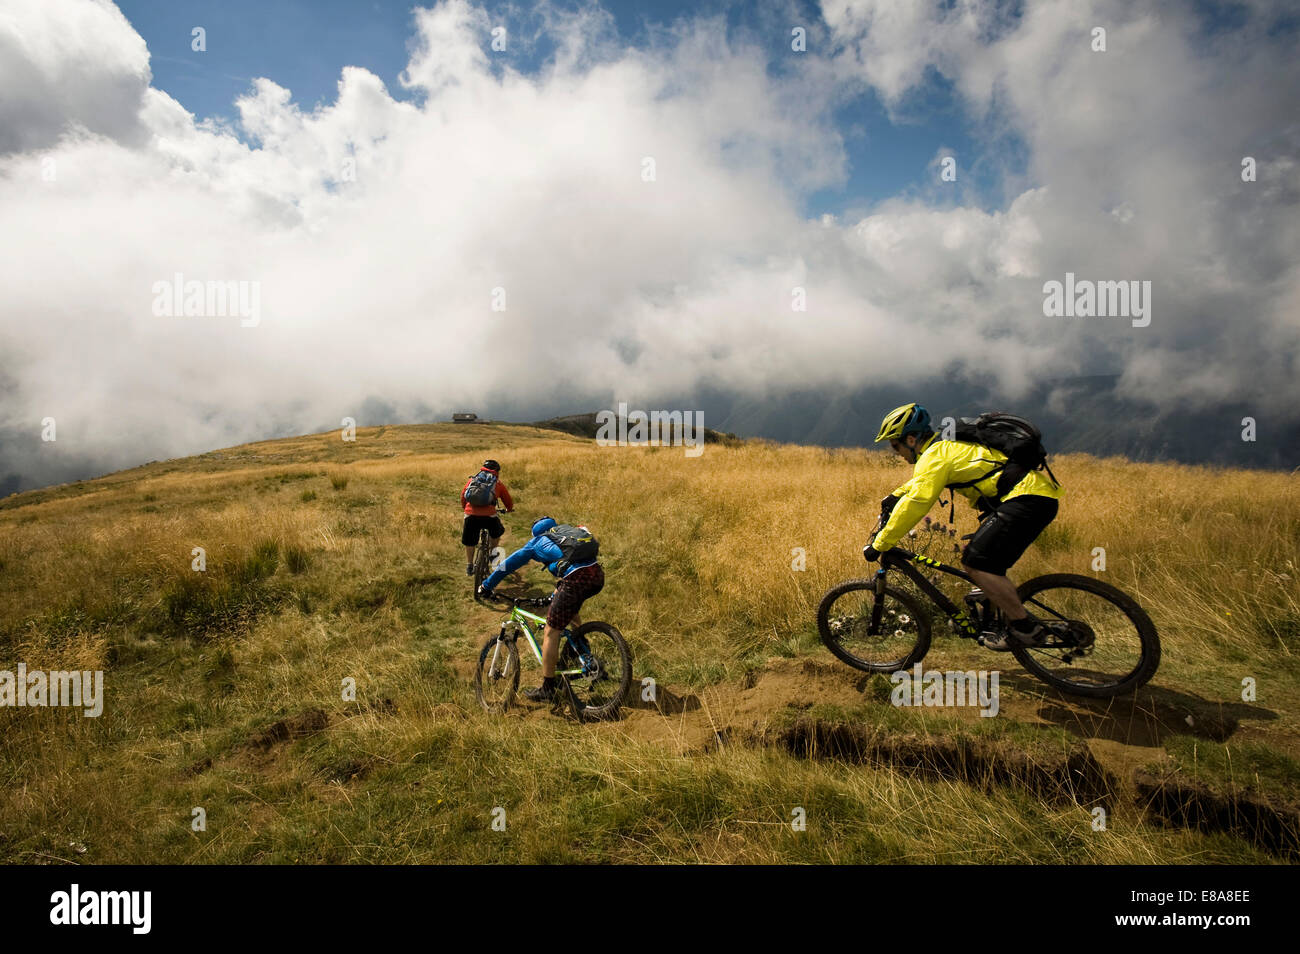 three mountain bikers on the way, Matajur, Istria, Slovenia - Stock Image